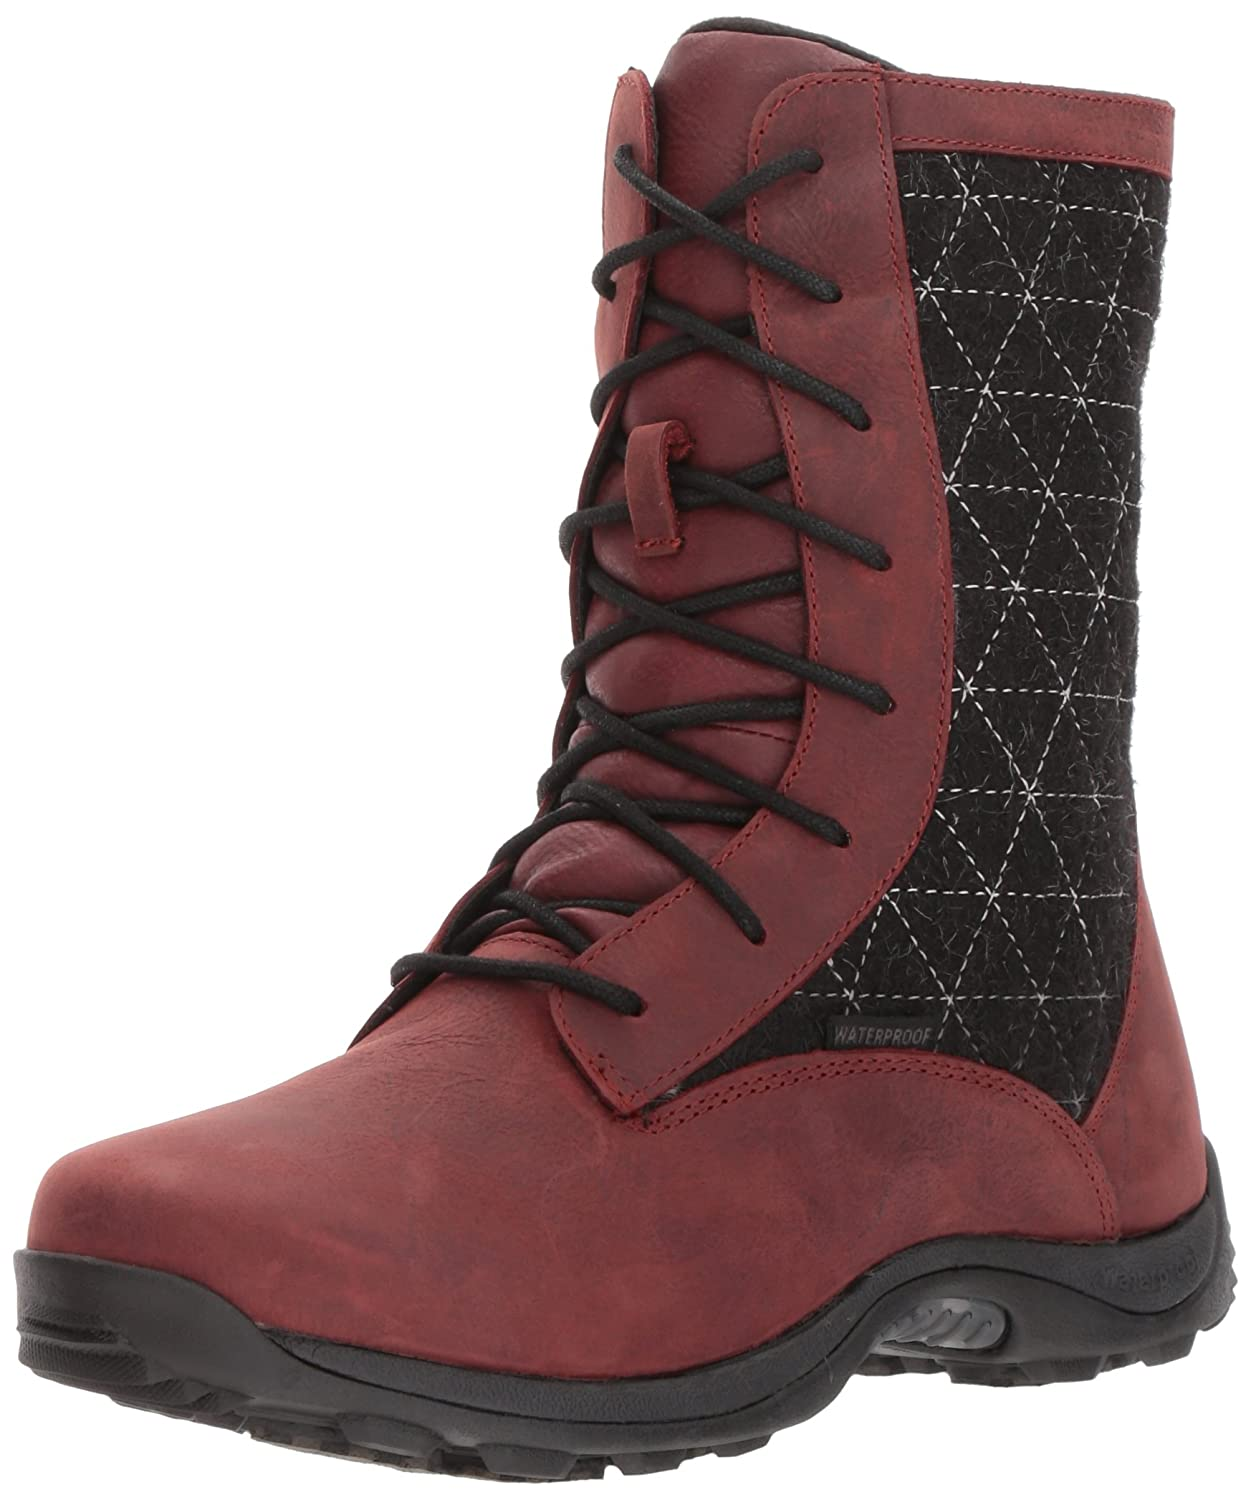 Baffin Womens Women's Alpine B01N2B1F22 10 B(M) US|Dark Red